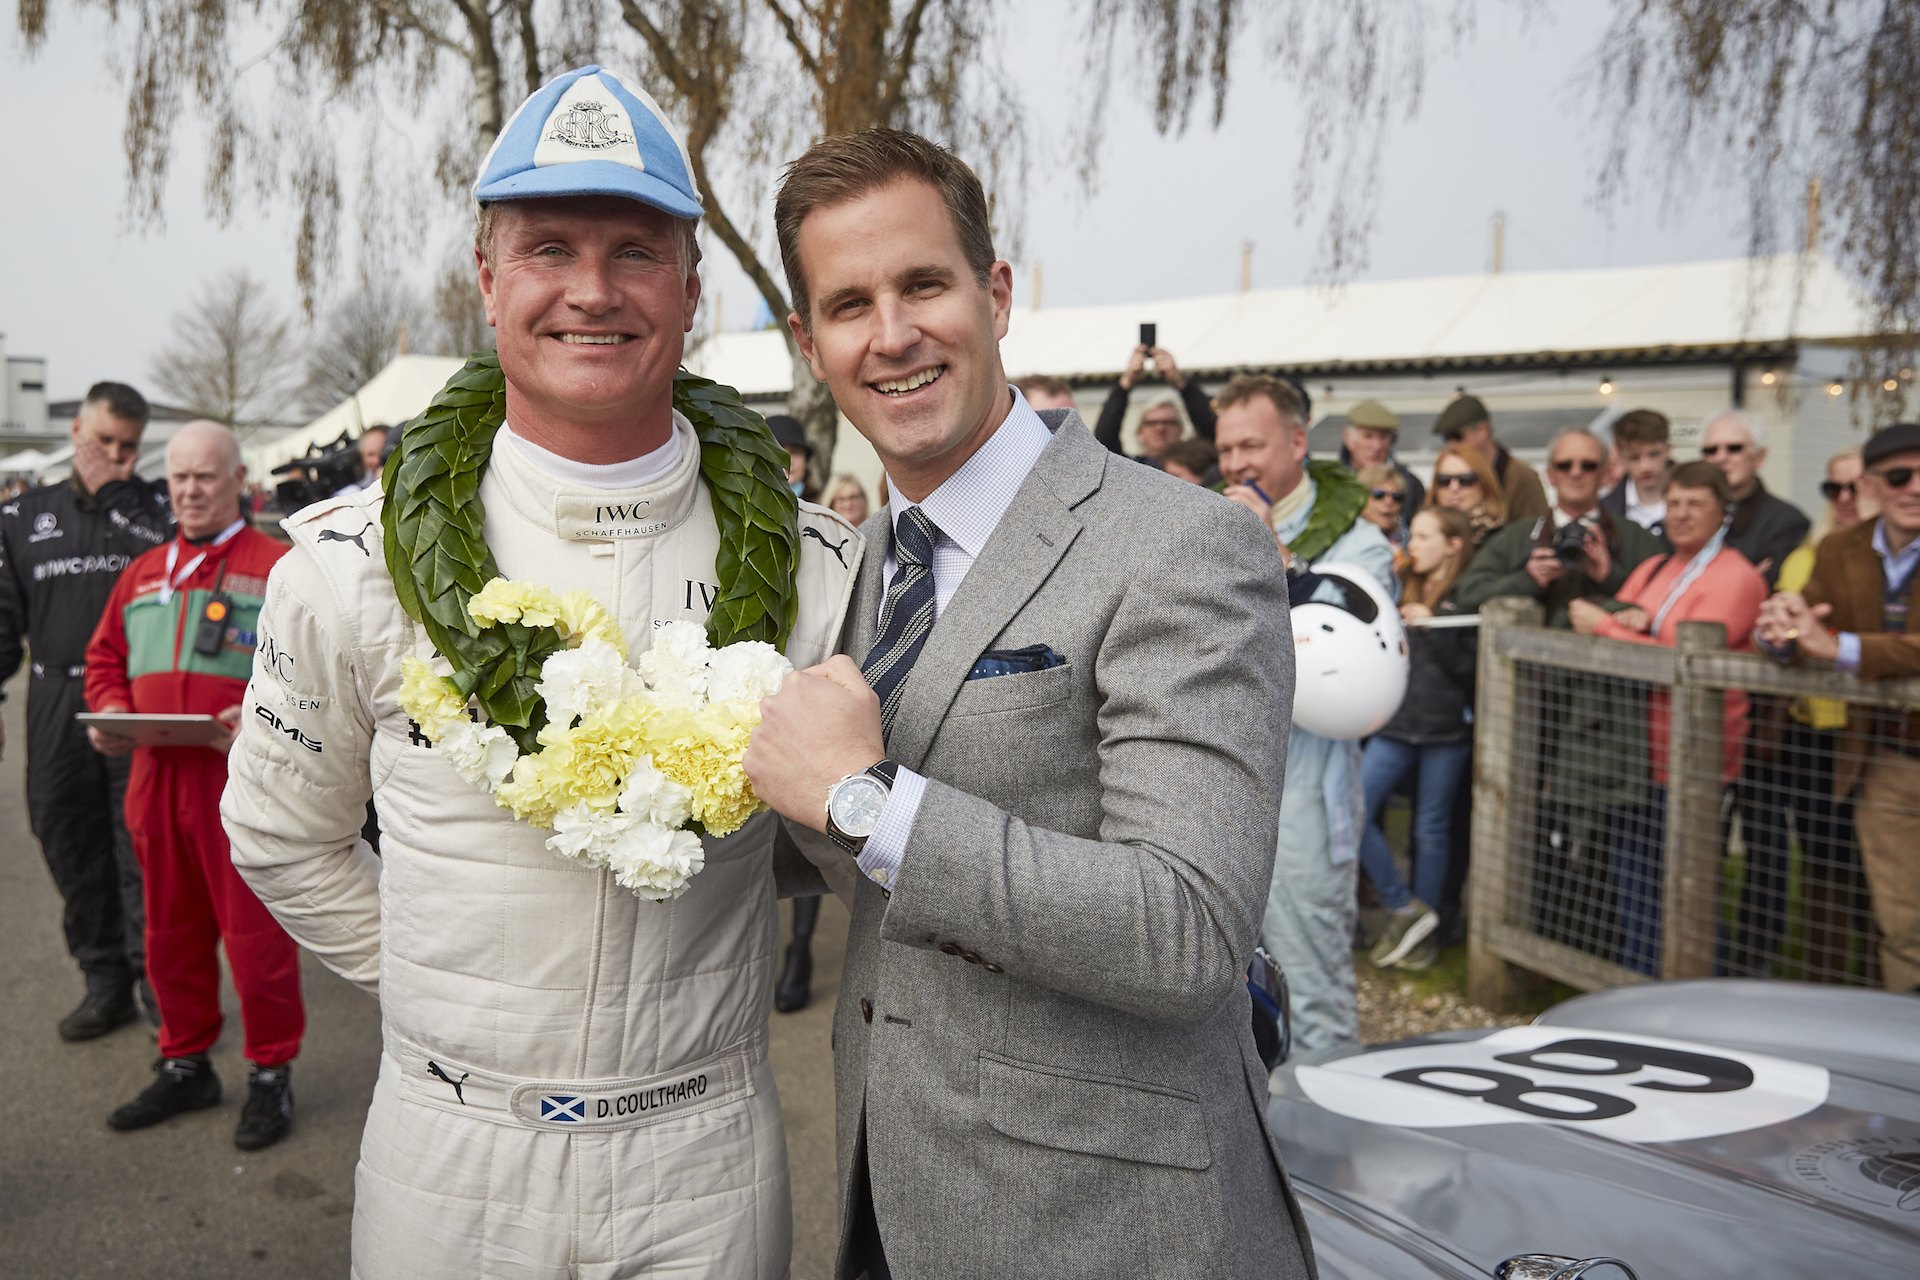 Christoph Grainger (IWC) und David Coulthard